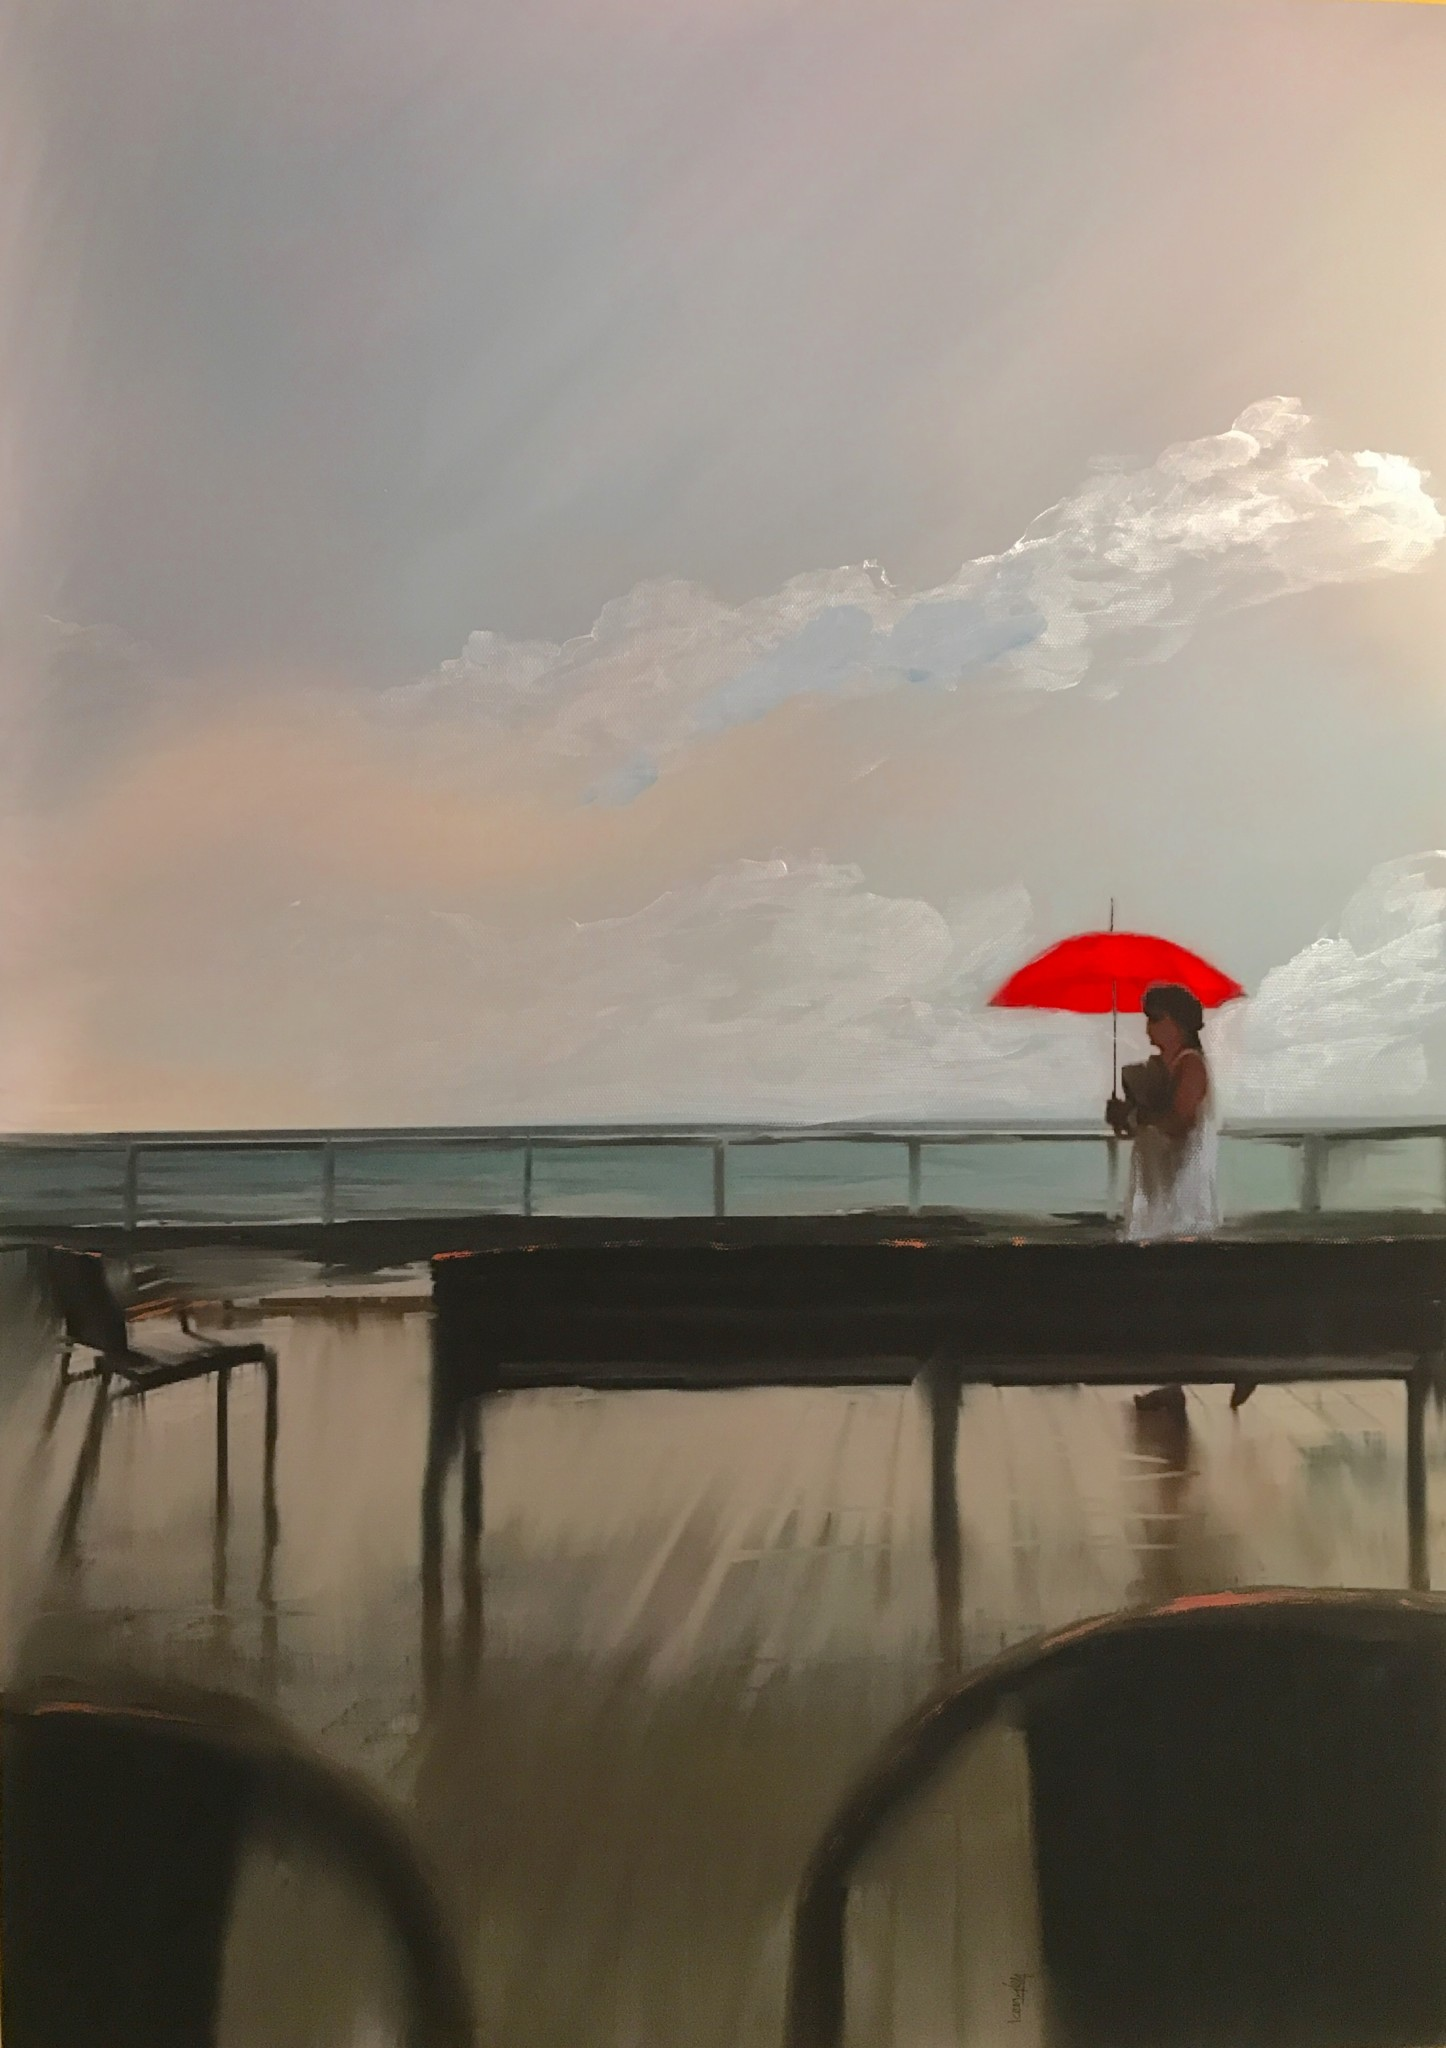 Red Umbrella / Y Ymbarél Coch